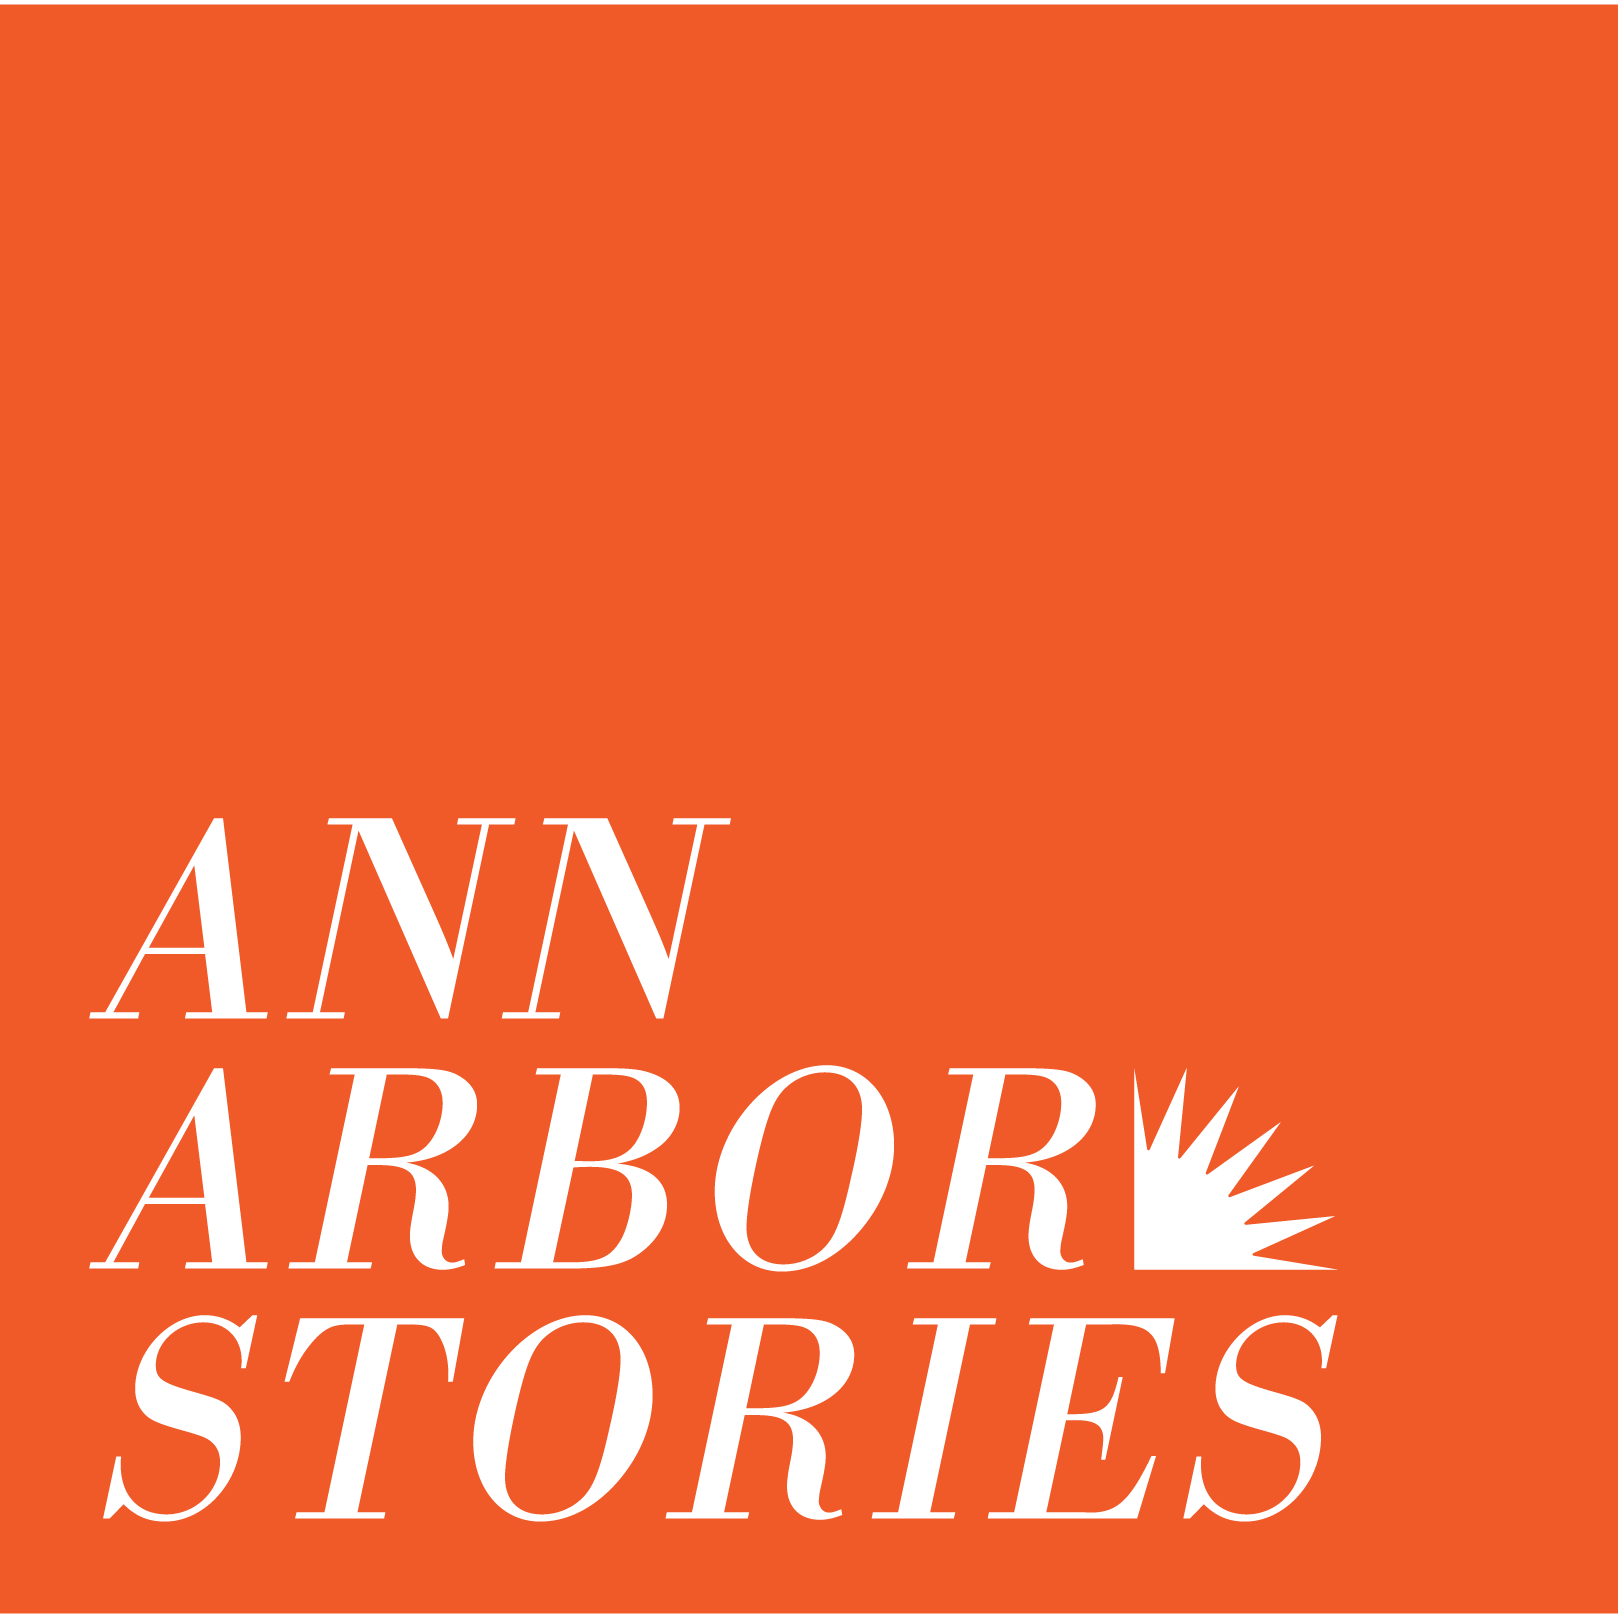 Promotional image for #41 Ann Arbor Stories: Skyscrapers podcast